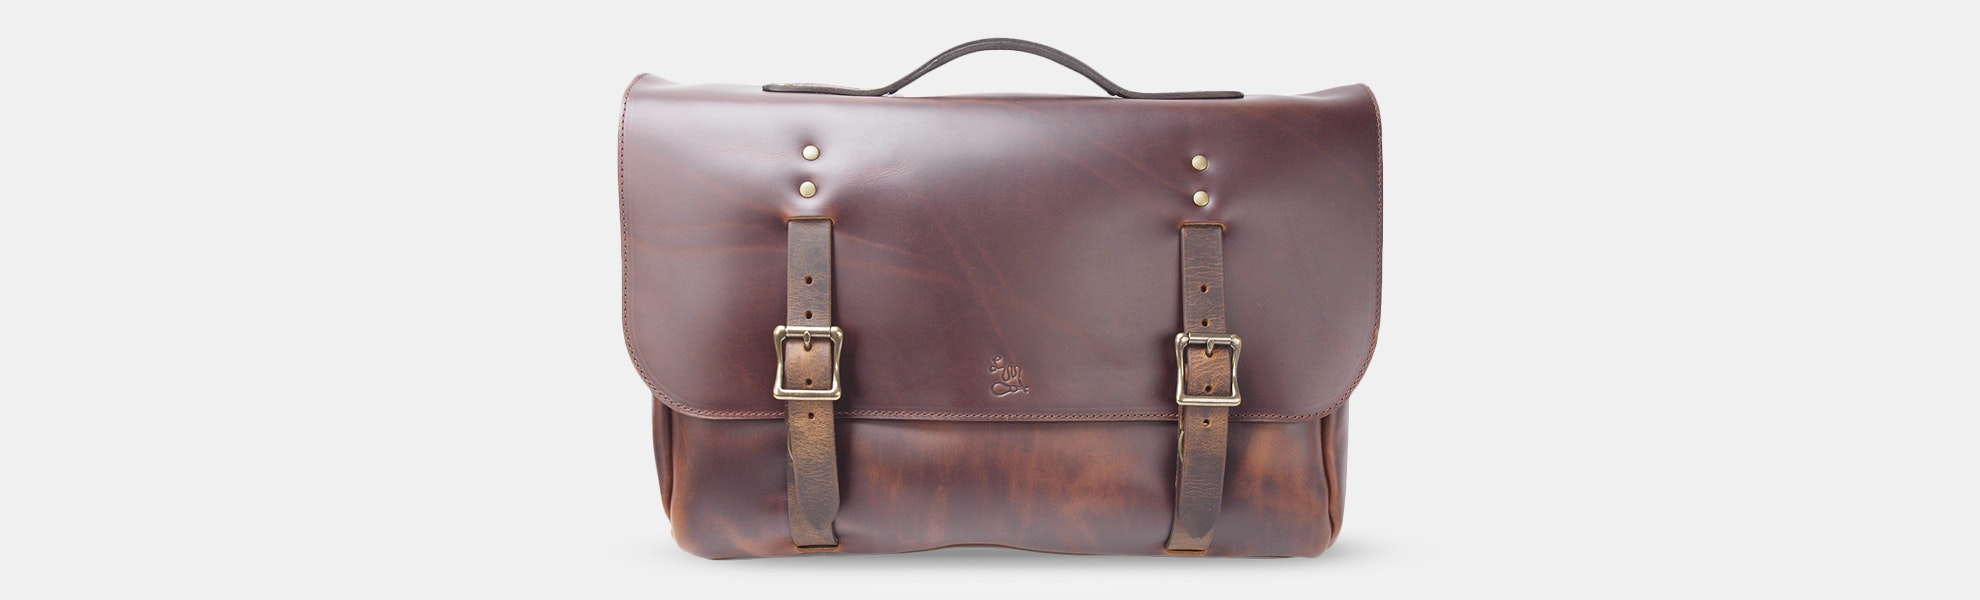 LM Products Calhoun Leather Satchel